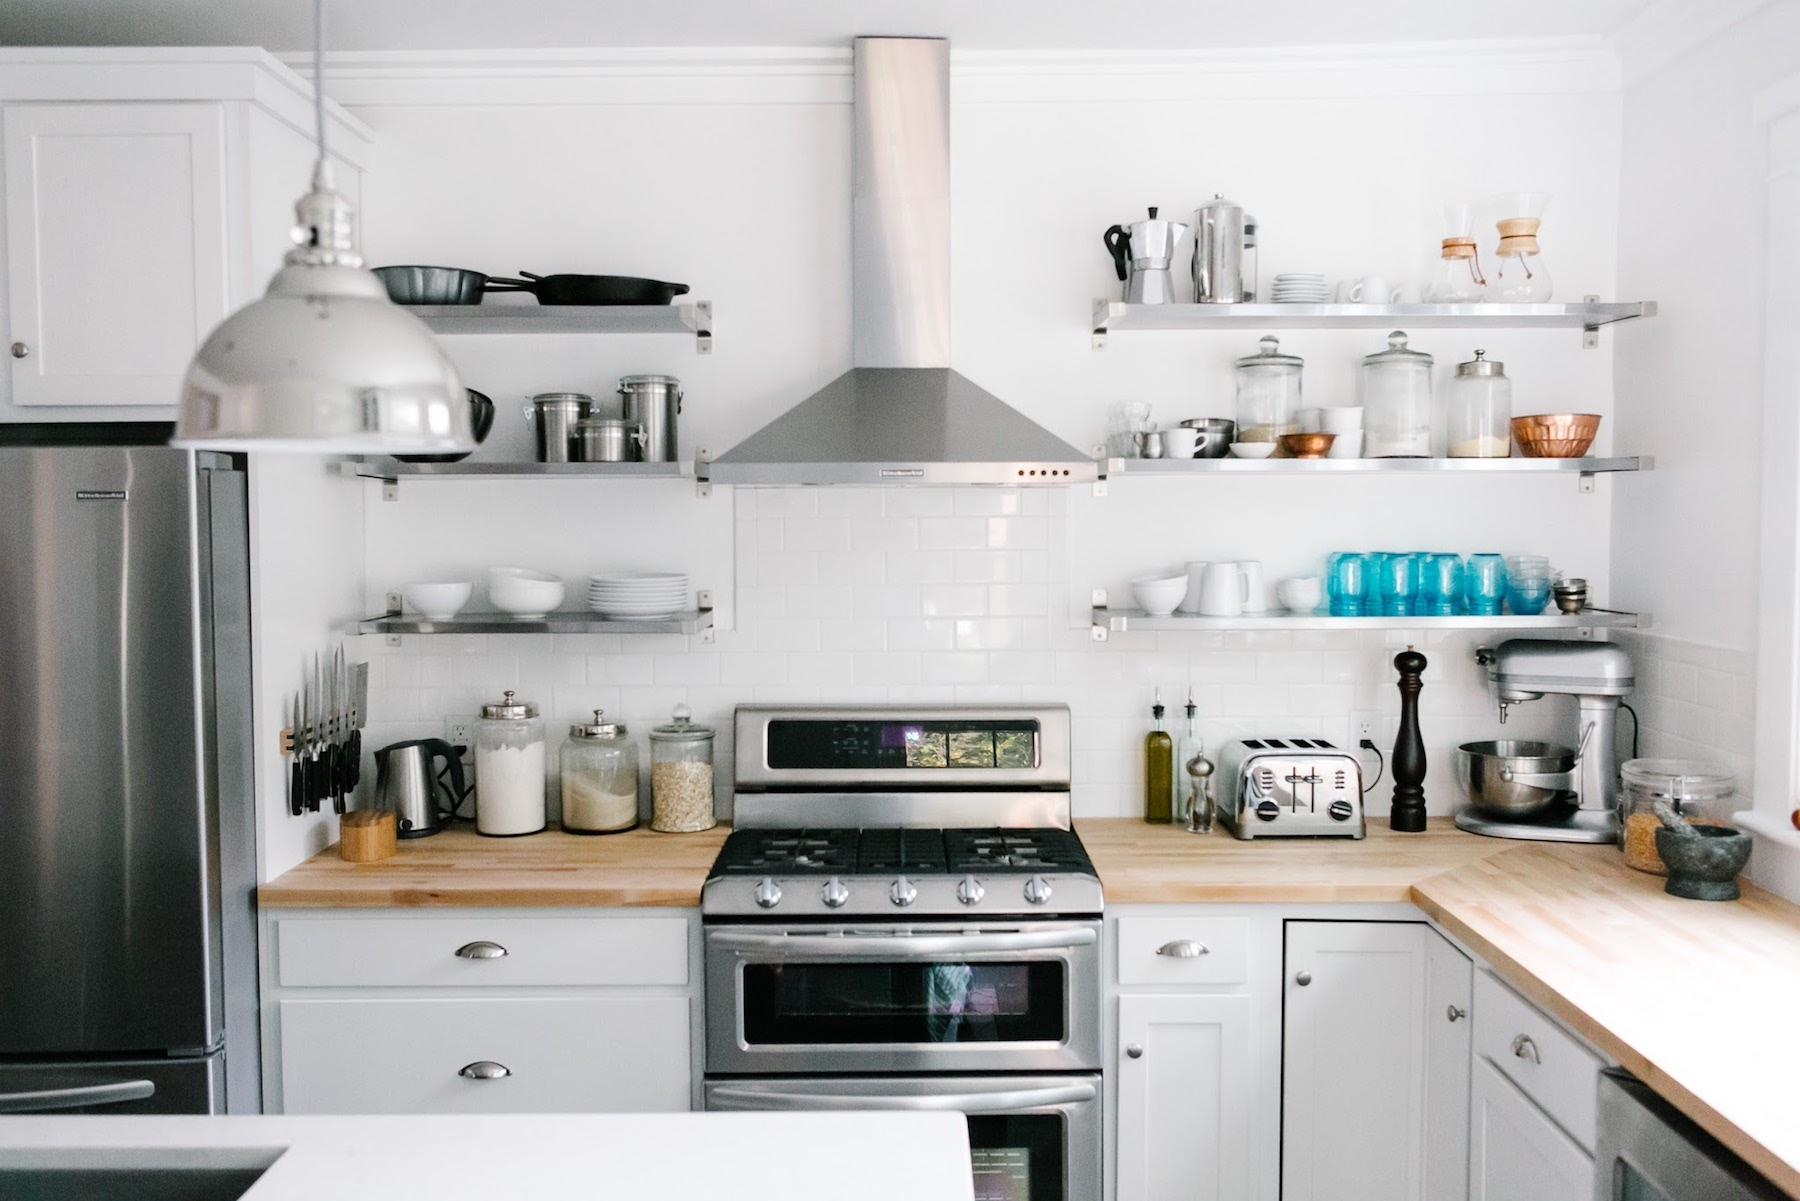 5 Quick & Easy Tips To Maintaining an Organized Kitchen